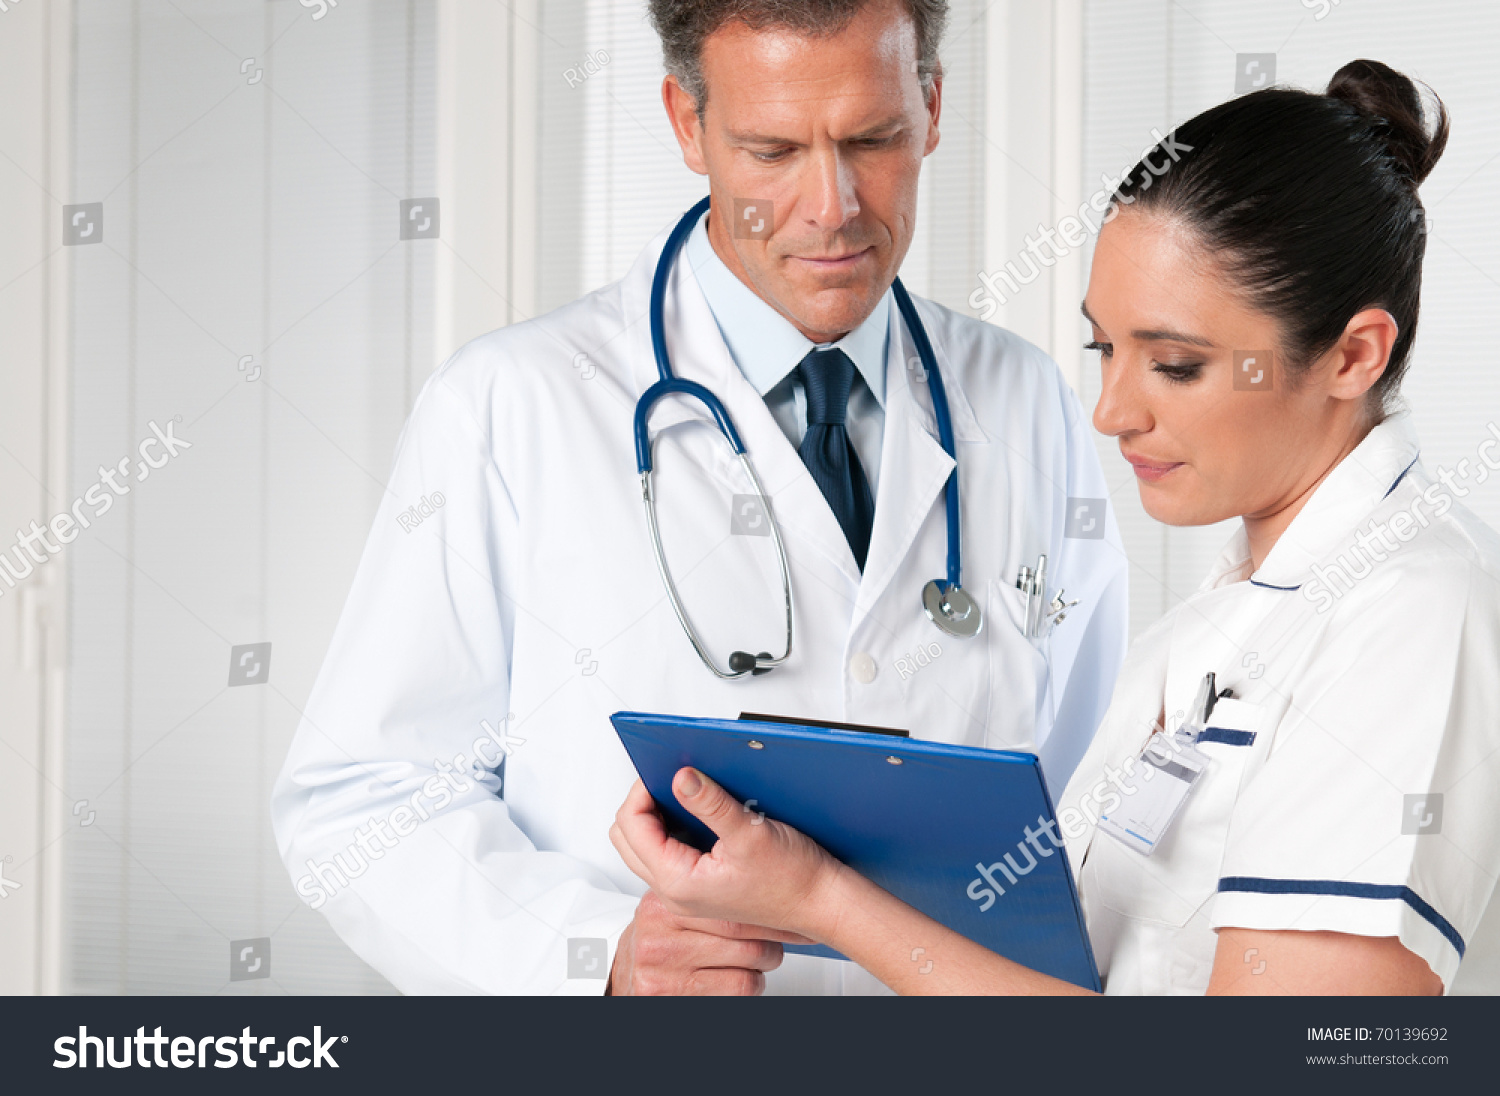 dating for nurses and doctors Just wanted to get some opinions on this one what is your opinion on nurses dating doctors/residents fyi - i'm definately not in this situation, but am a new nurse and just kind of curious.